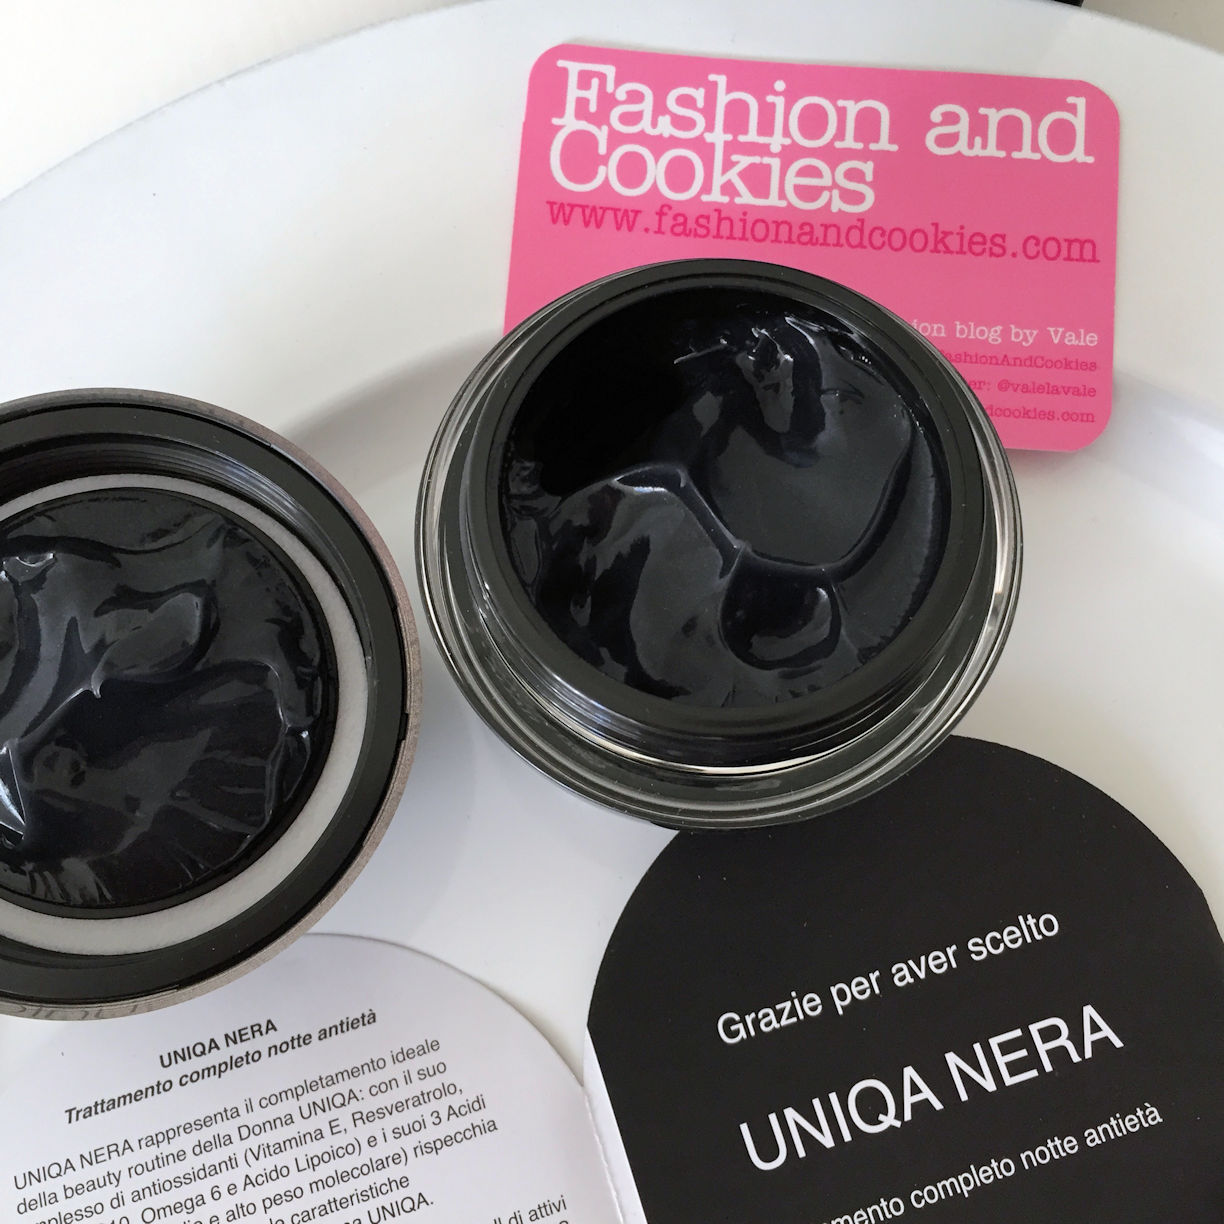 Uniqa Nera by Pea Cosmetics black anti-age night-time cream on Fashion and Cookies beauty blog, beauty blogger